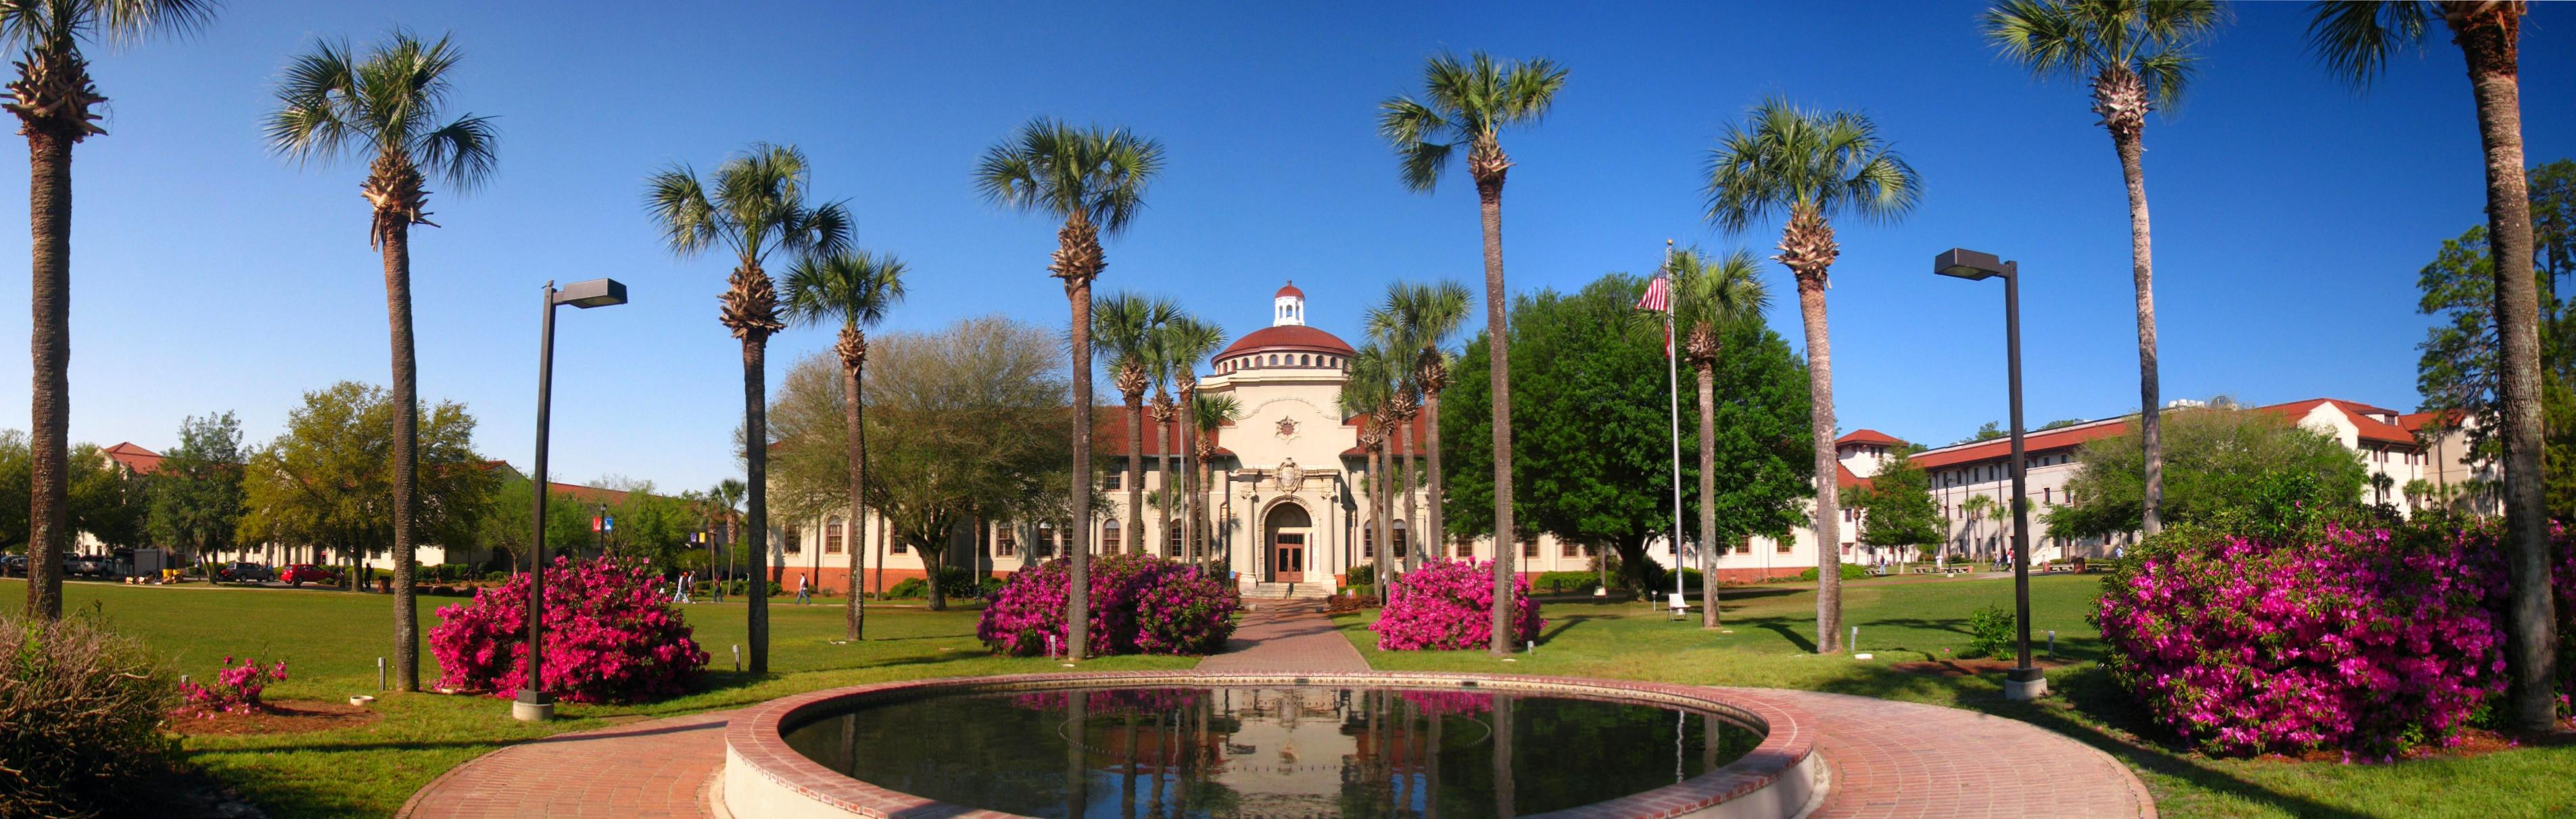 File:ValdostaStatefountain.jpg - Wikimedia Commons